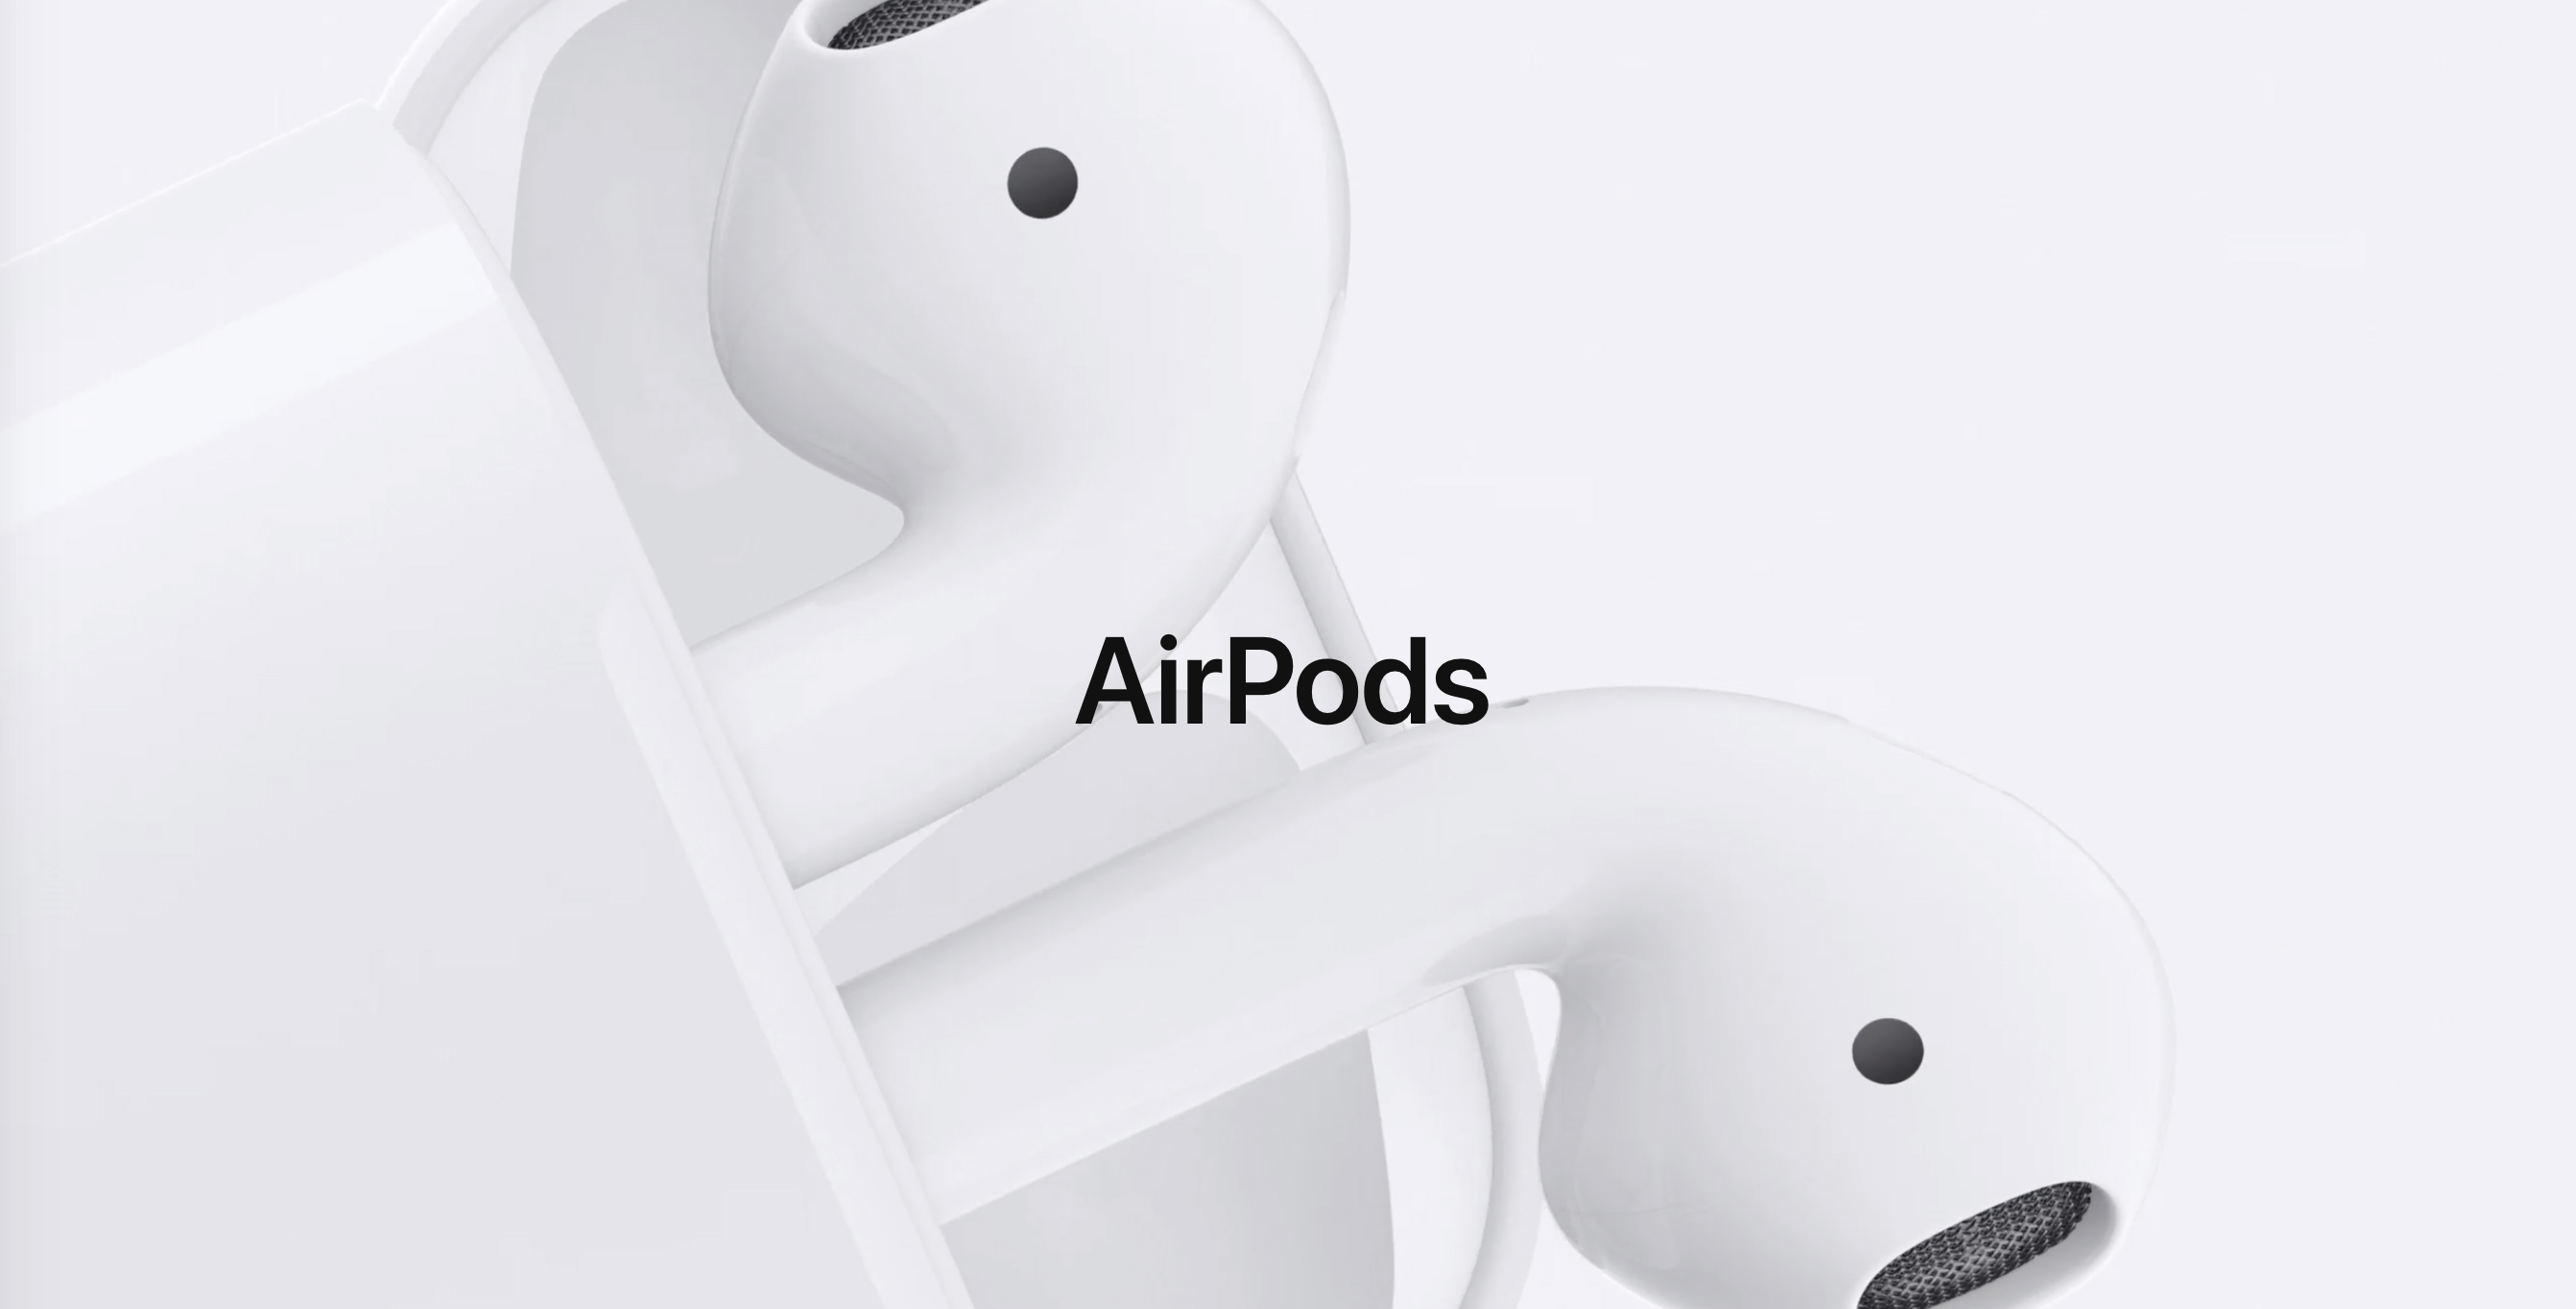 Apple's OG AirPods are on sale from $130 (Orig. $159)